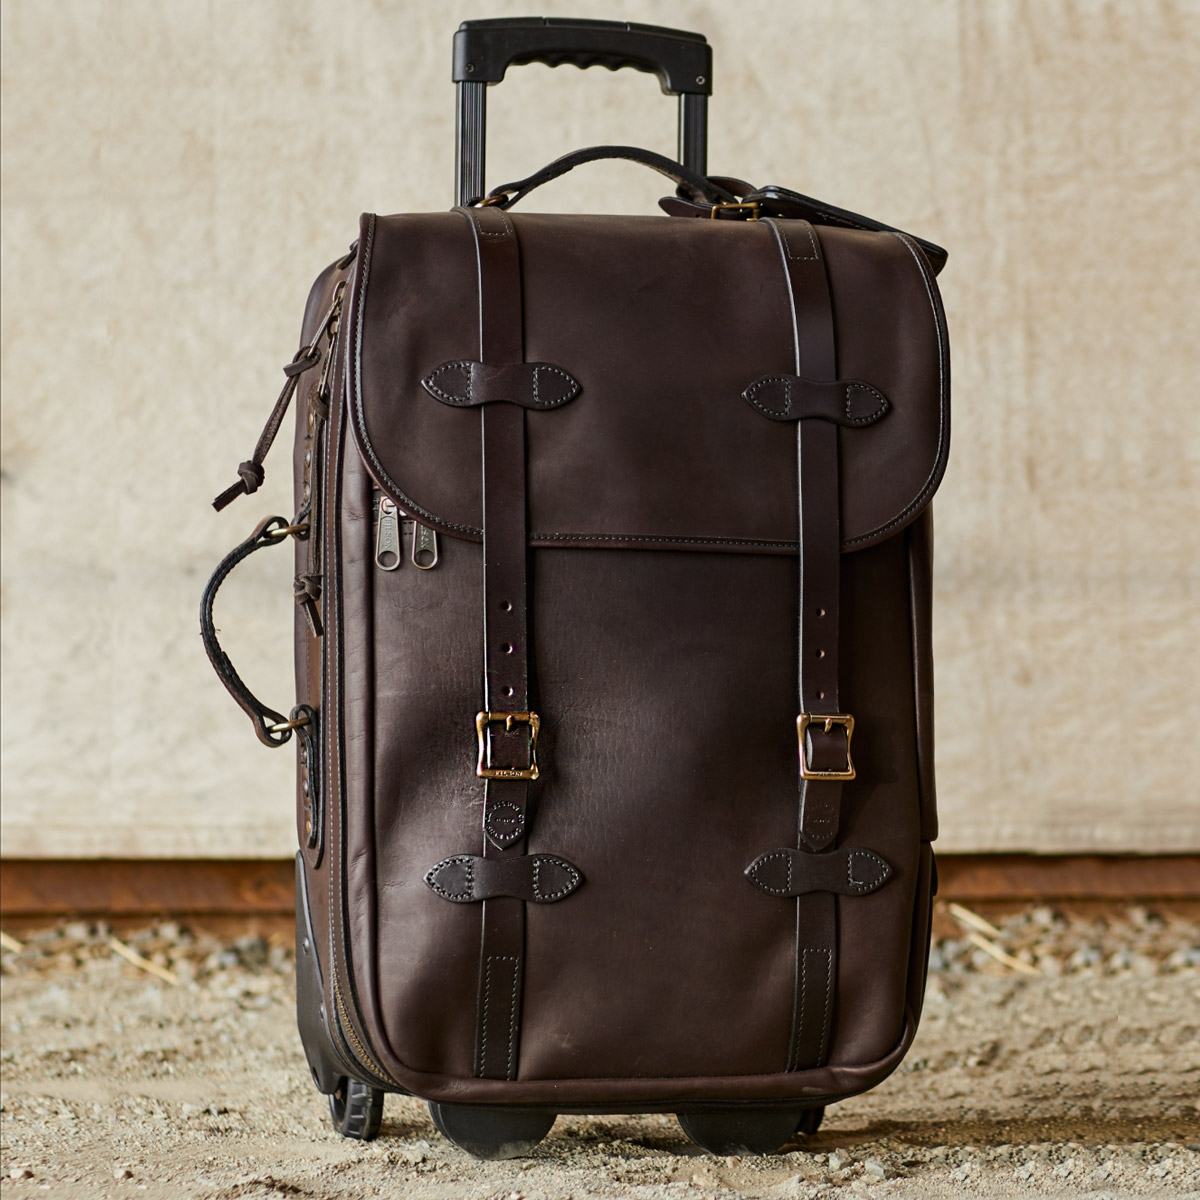 Filson Weatherproof Rolling Carry-On Bag-Medium Leather, perfect travelbag guaranteed for life